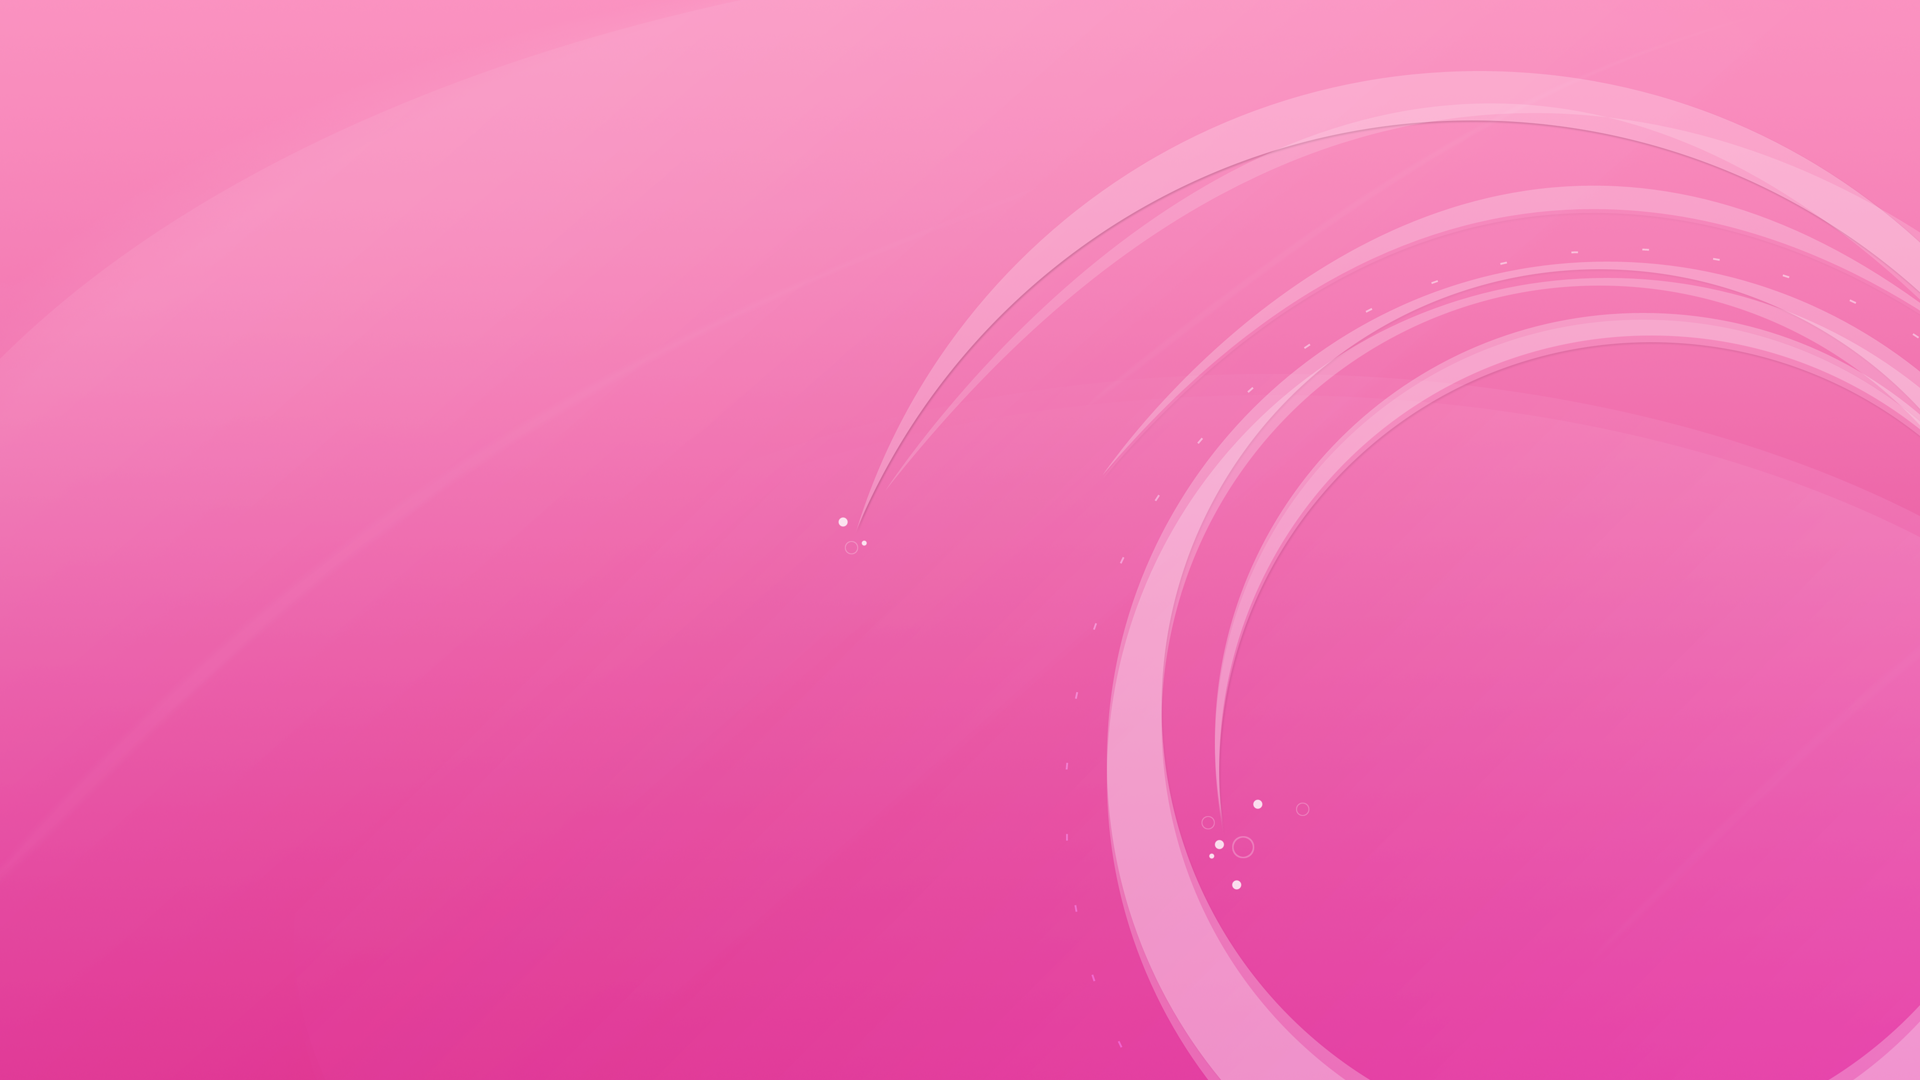 Pink Wallpaper HD